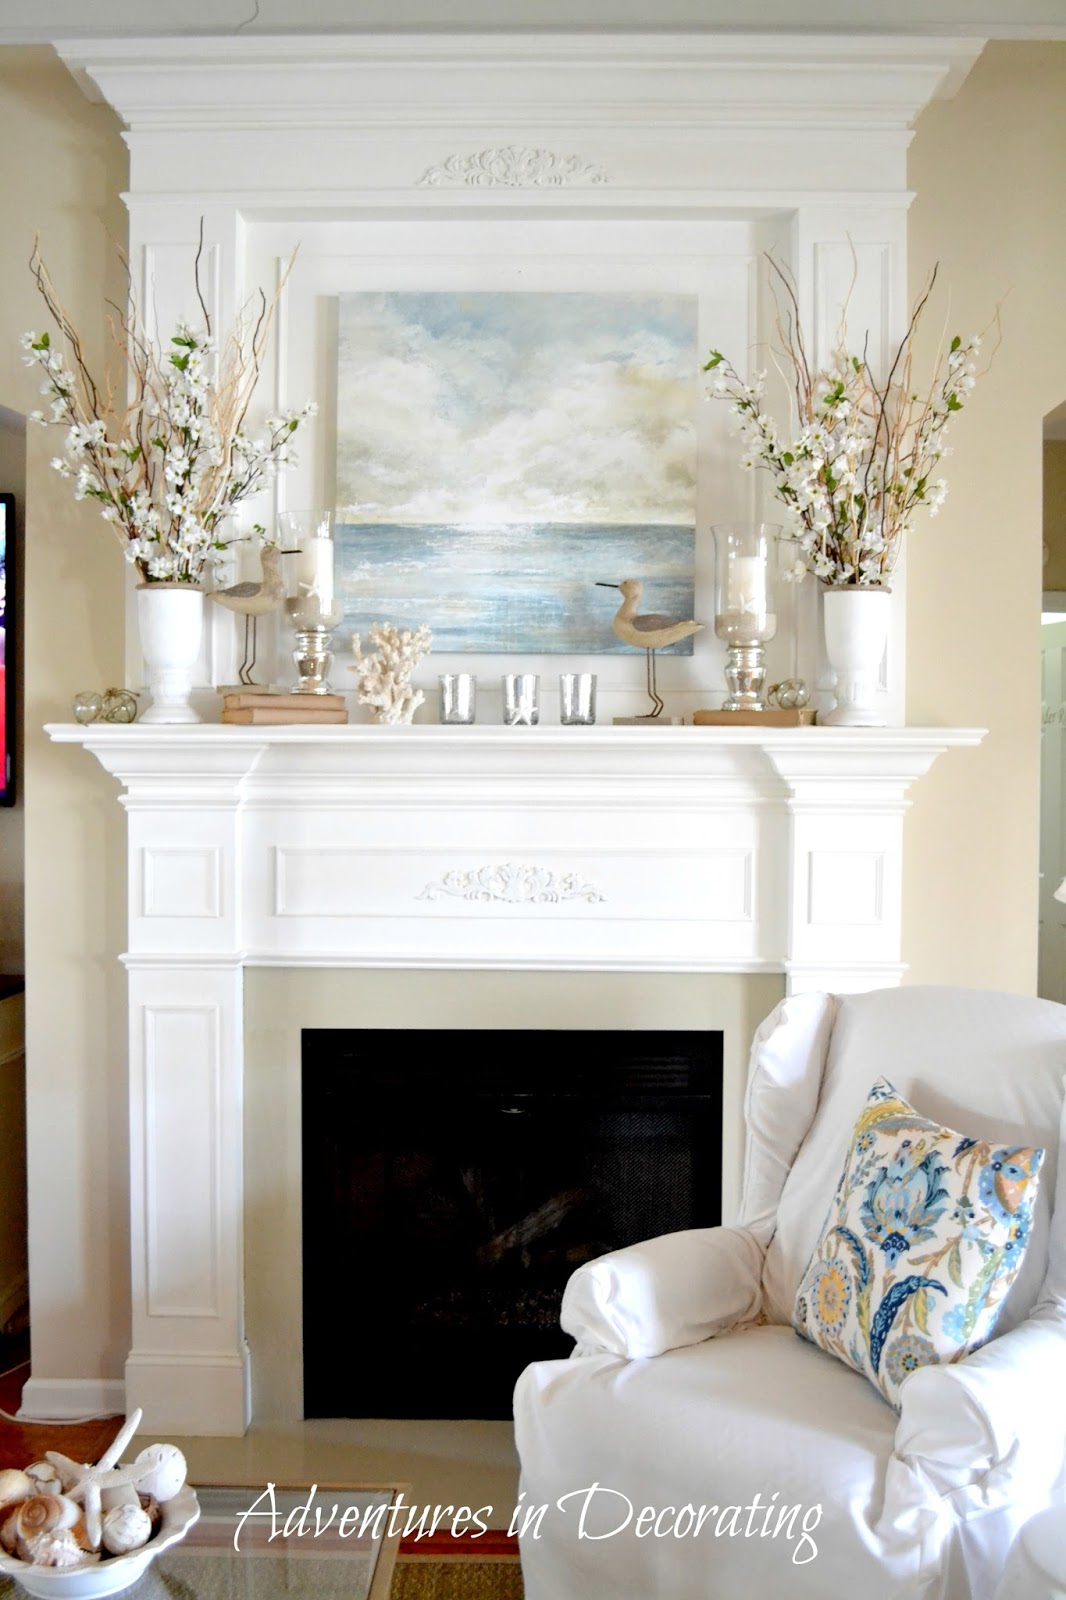 Decorating Ideas > Adventures In Decorating FORMER HOUSE TOUR ~ 141146_Fireplace Mantel Decorating Ideas For Summer